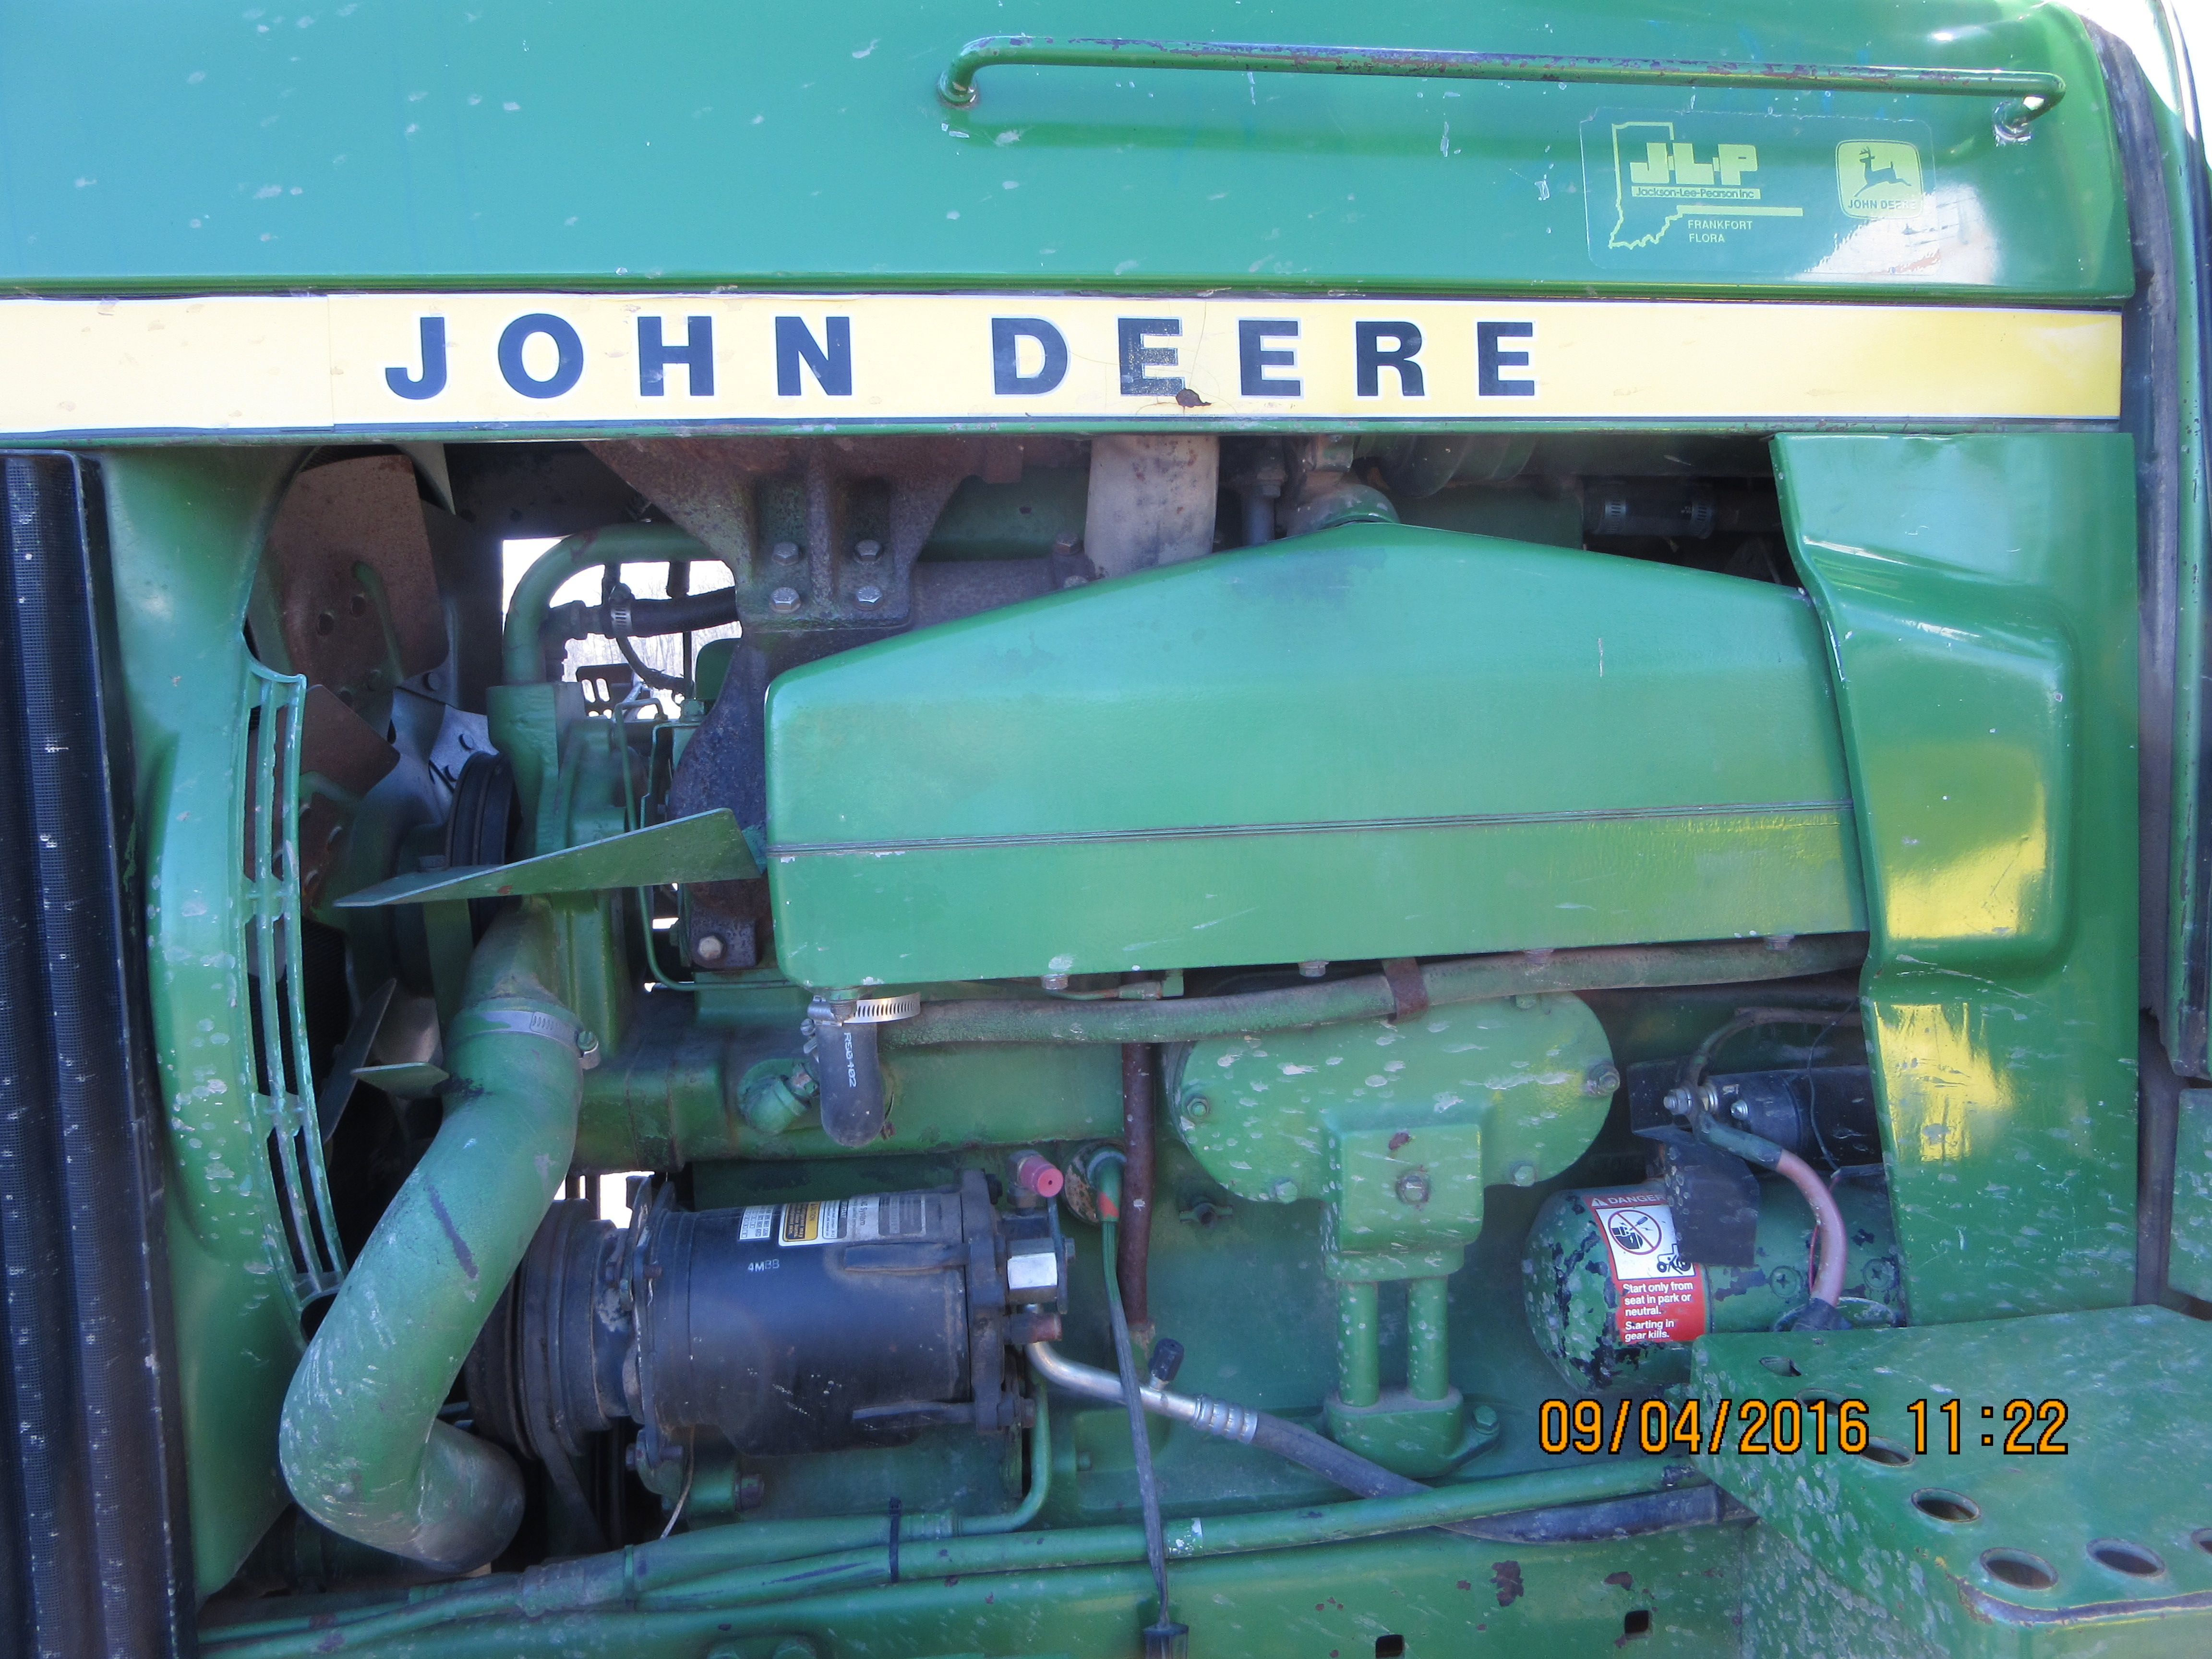 Intercooler on John Deere 4630 404 cid diesel engine.The 150 hp 4630 was  the 5th JD tractor to get a intercooler